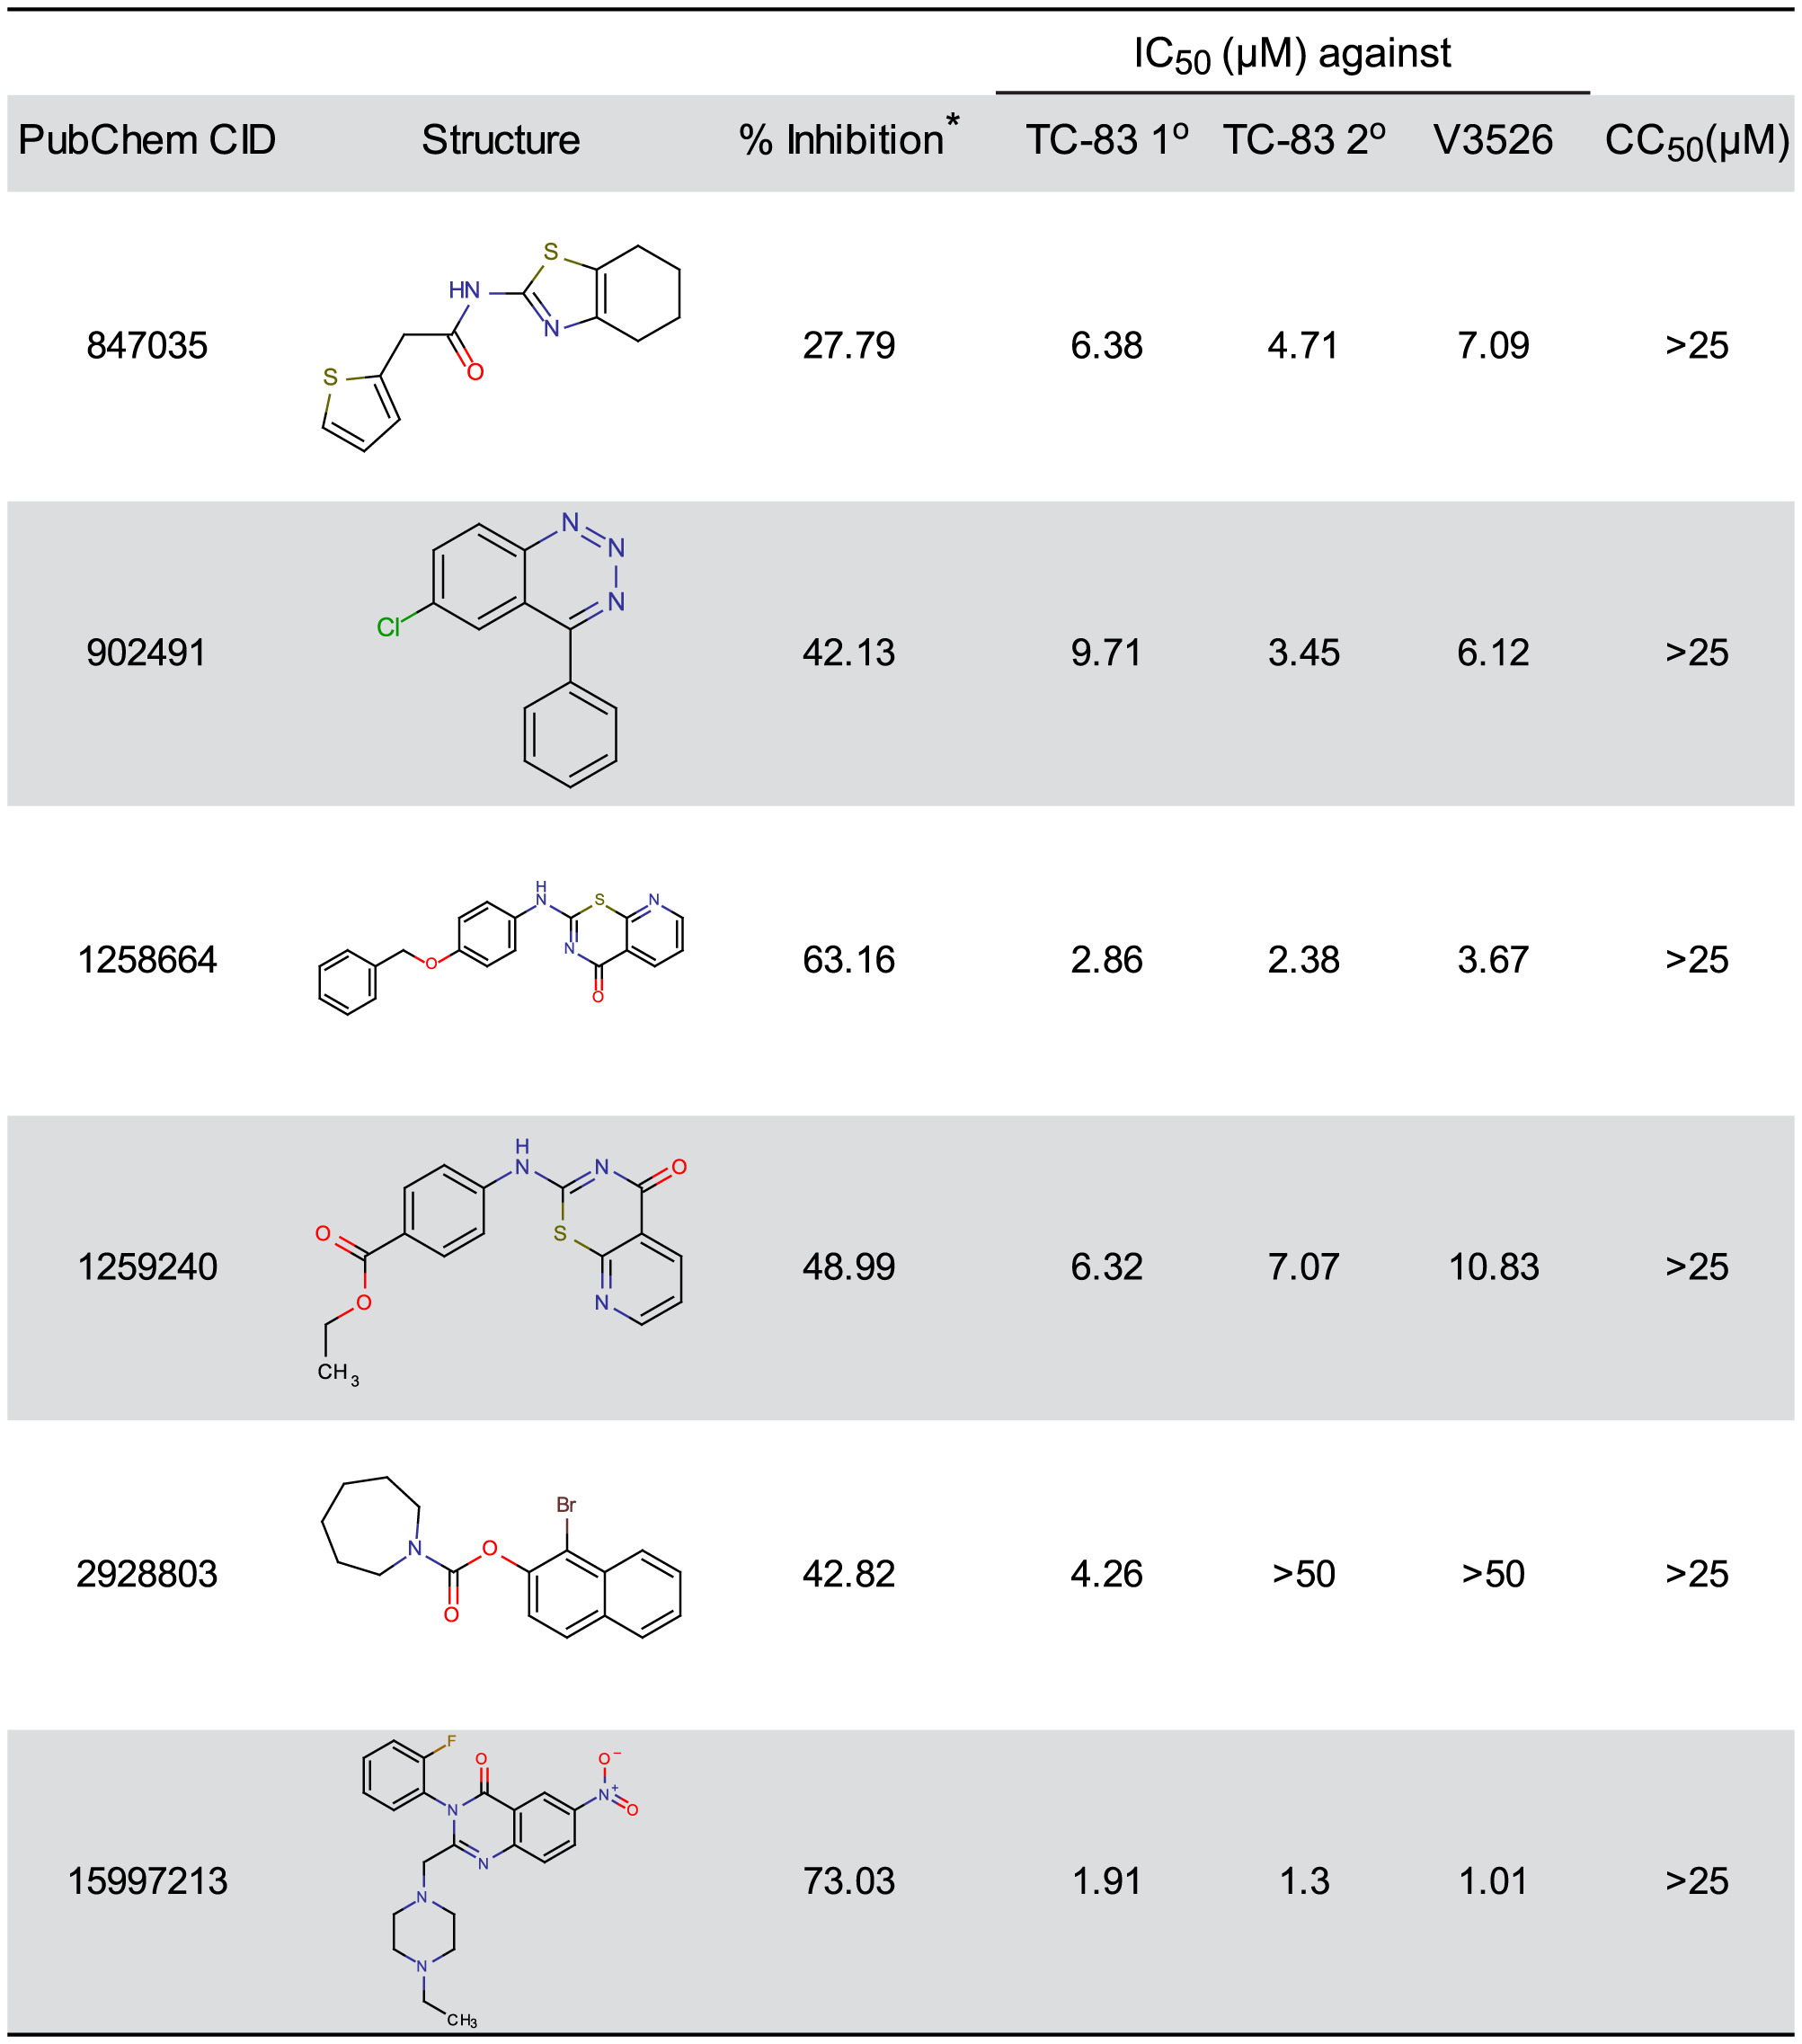 Selected small molecules with potent antiviral activity.